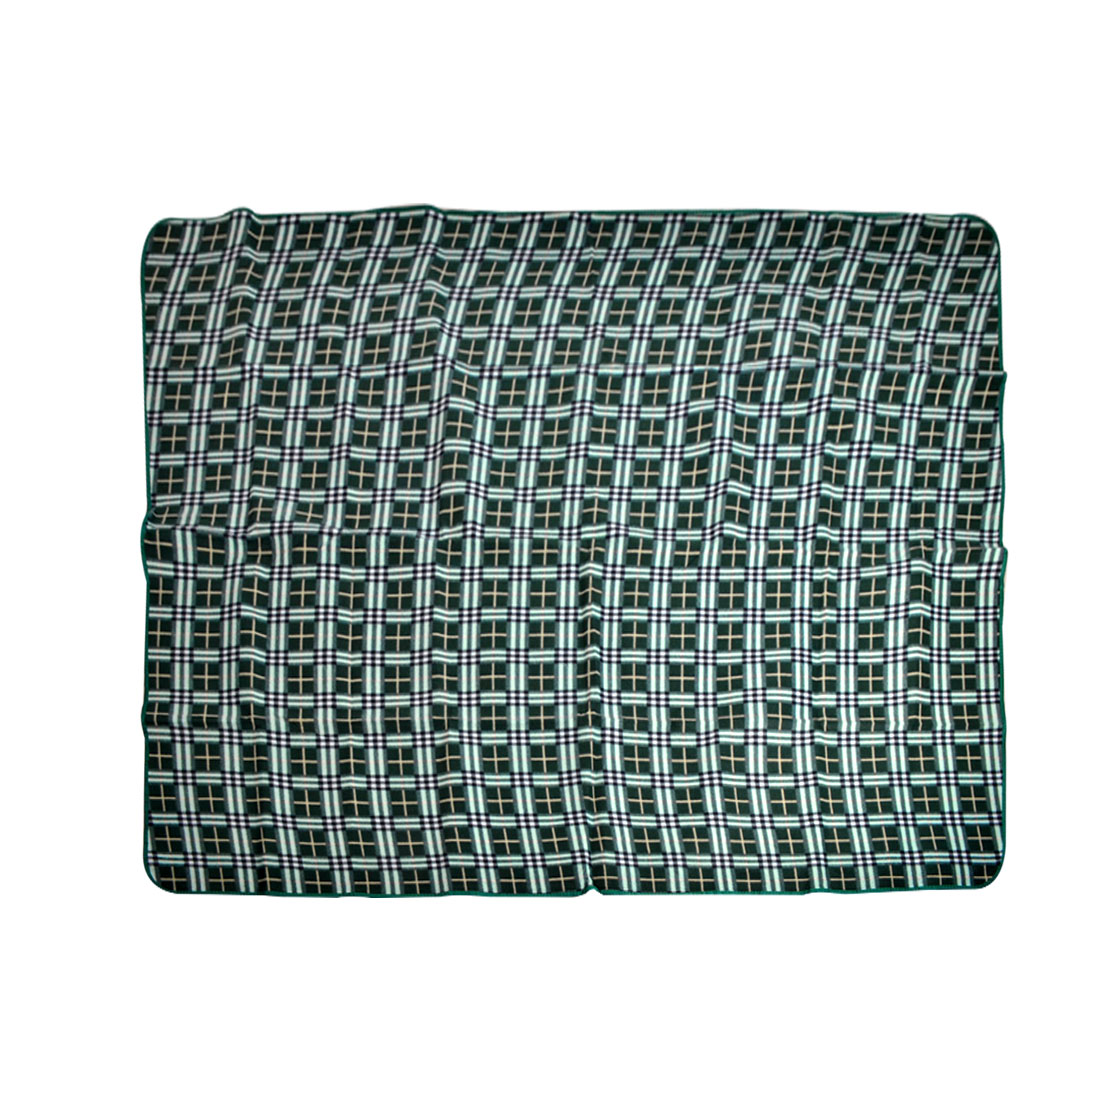 Grids Printed Dampproof Camping Picnic Mat Blanket Green 150cm x 130cm